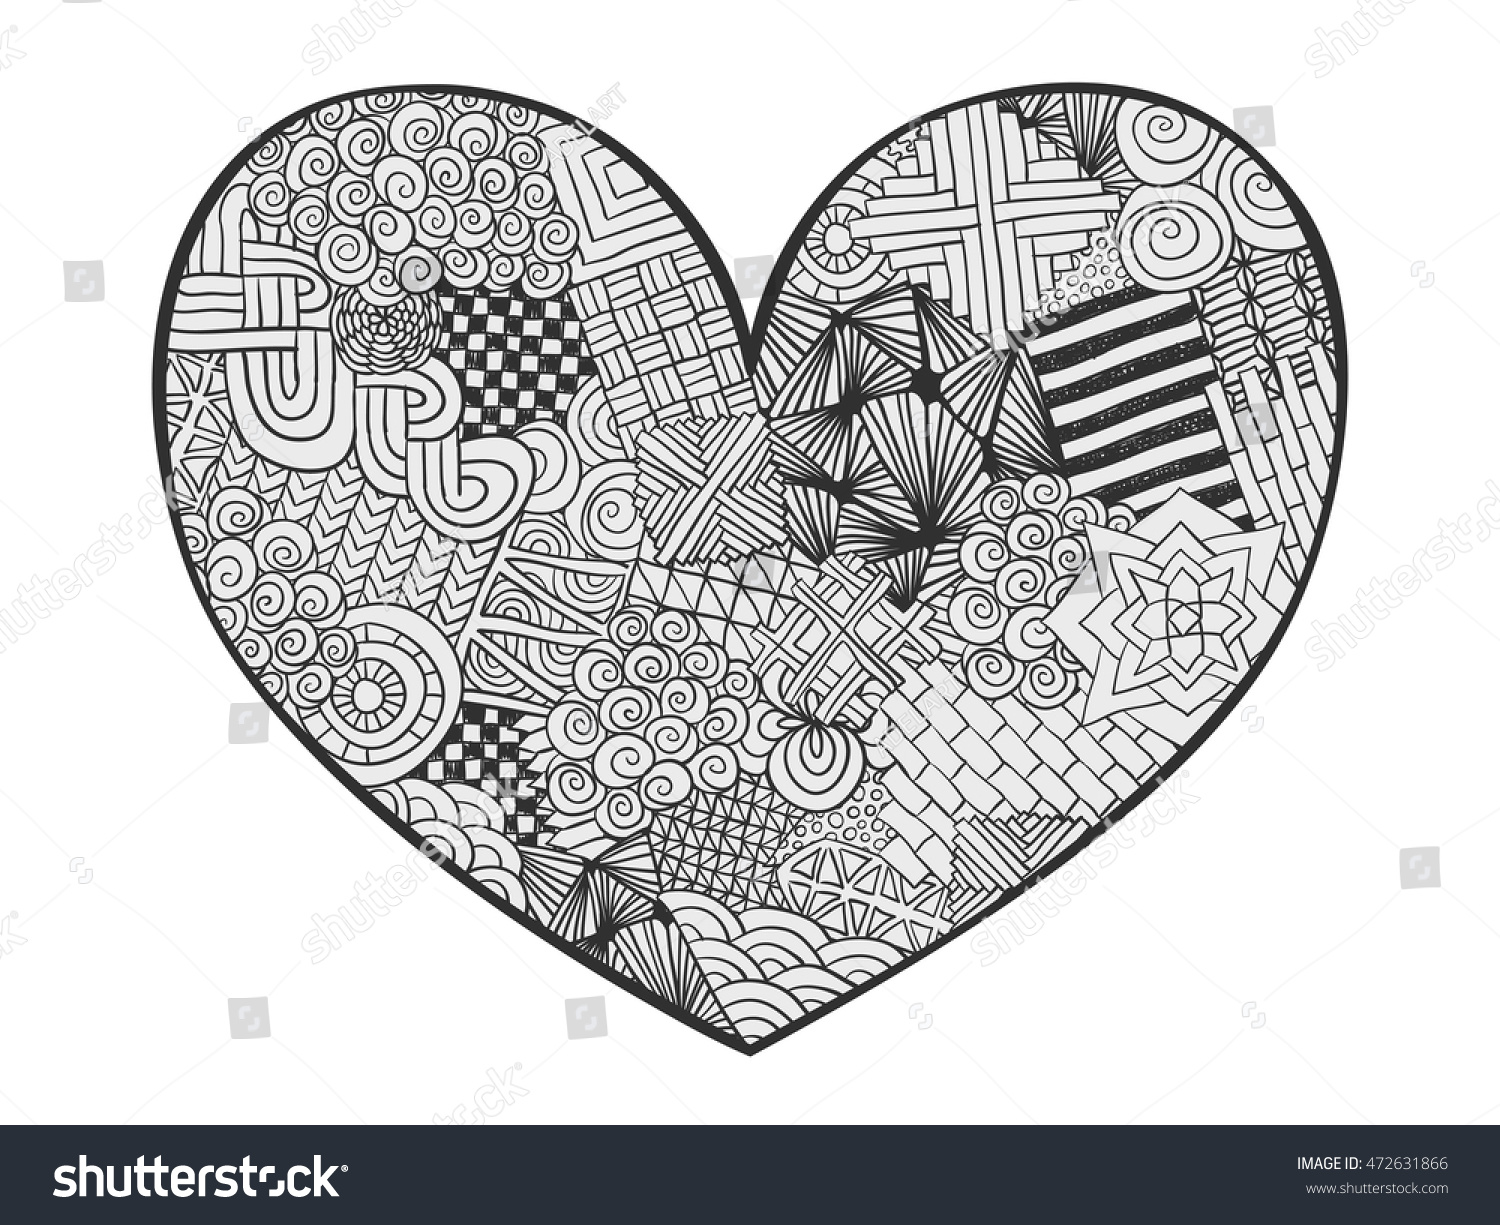 Hand Drawn Monochrome Hearts Zentangle Style Stock Vector (Royalty ... | 1225x1500